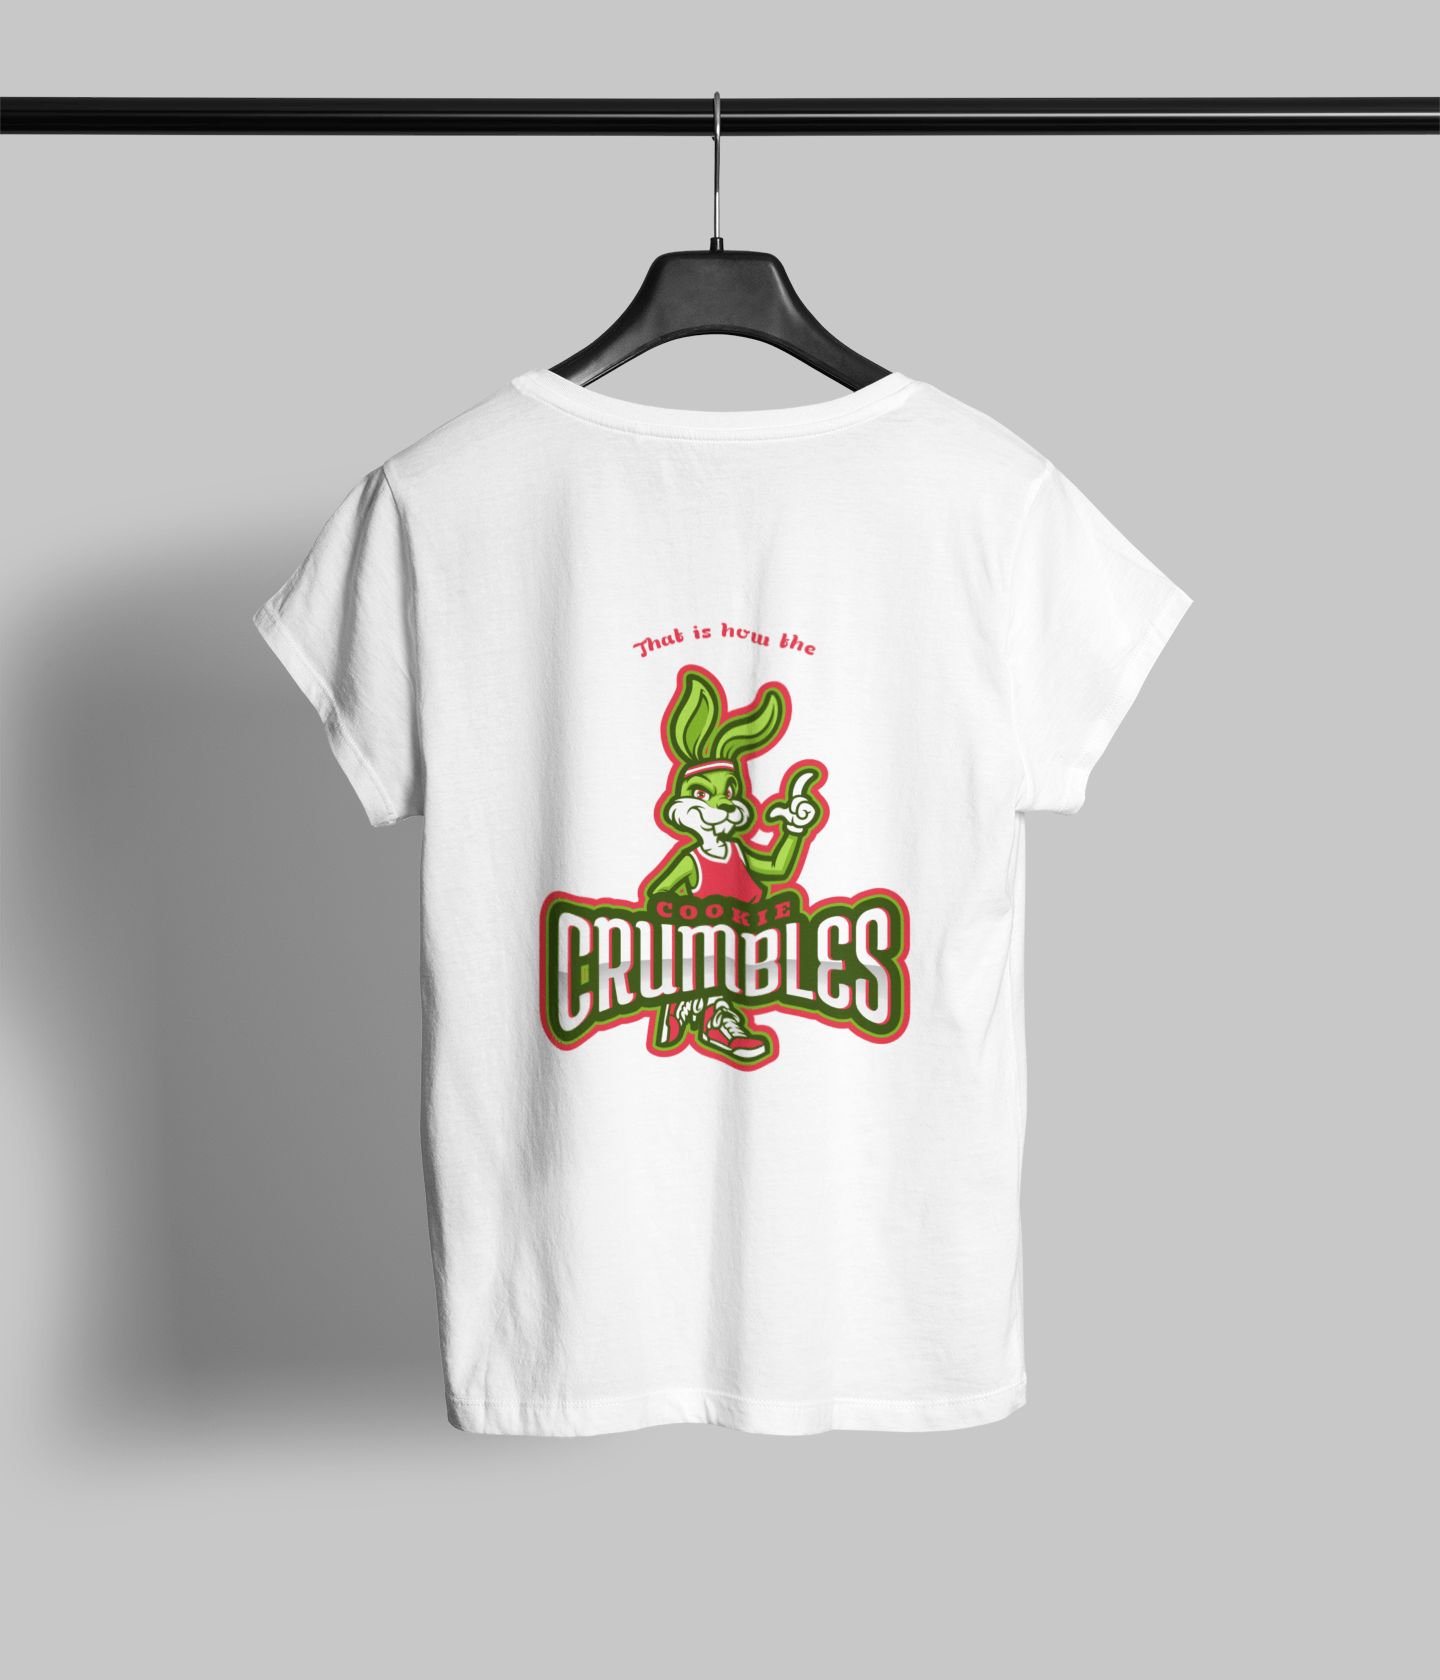 Cookie Crumbles Clothing Printrove White 1